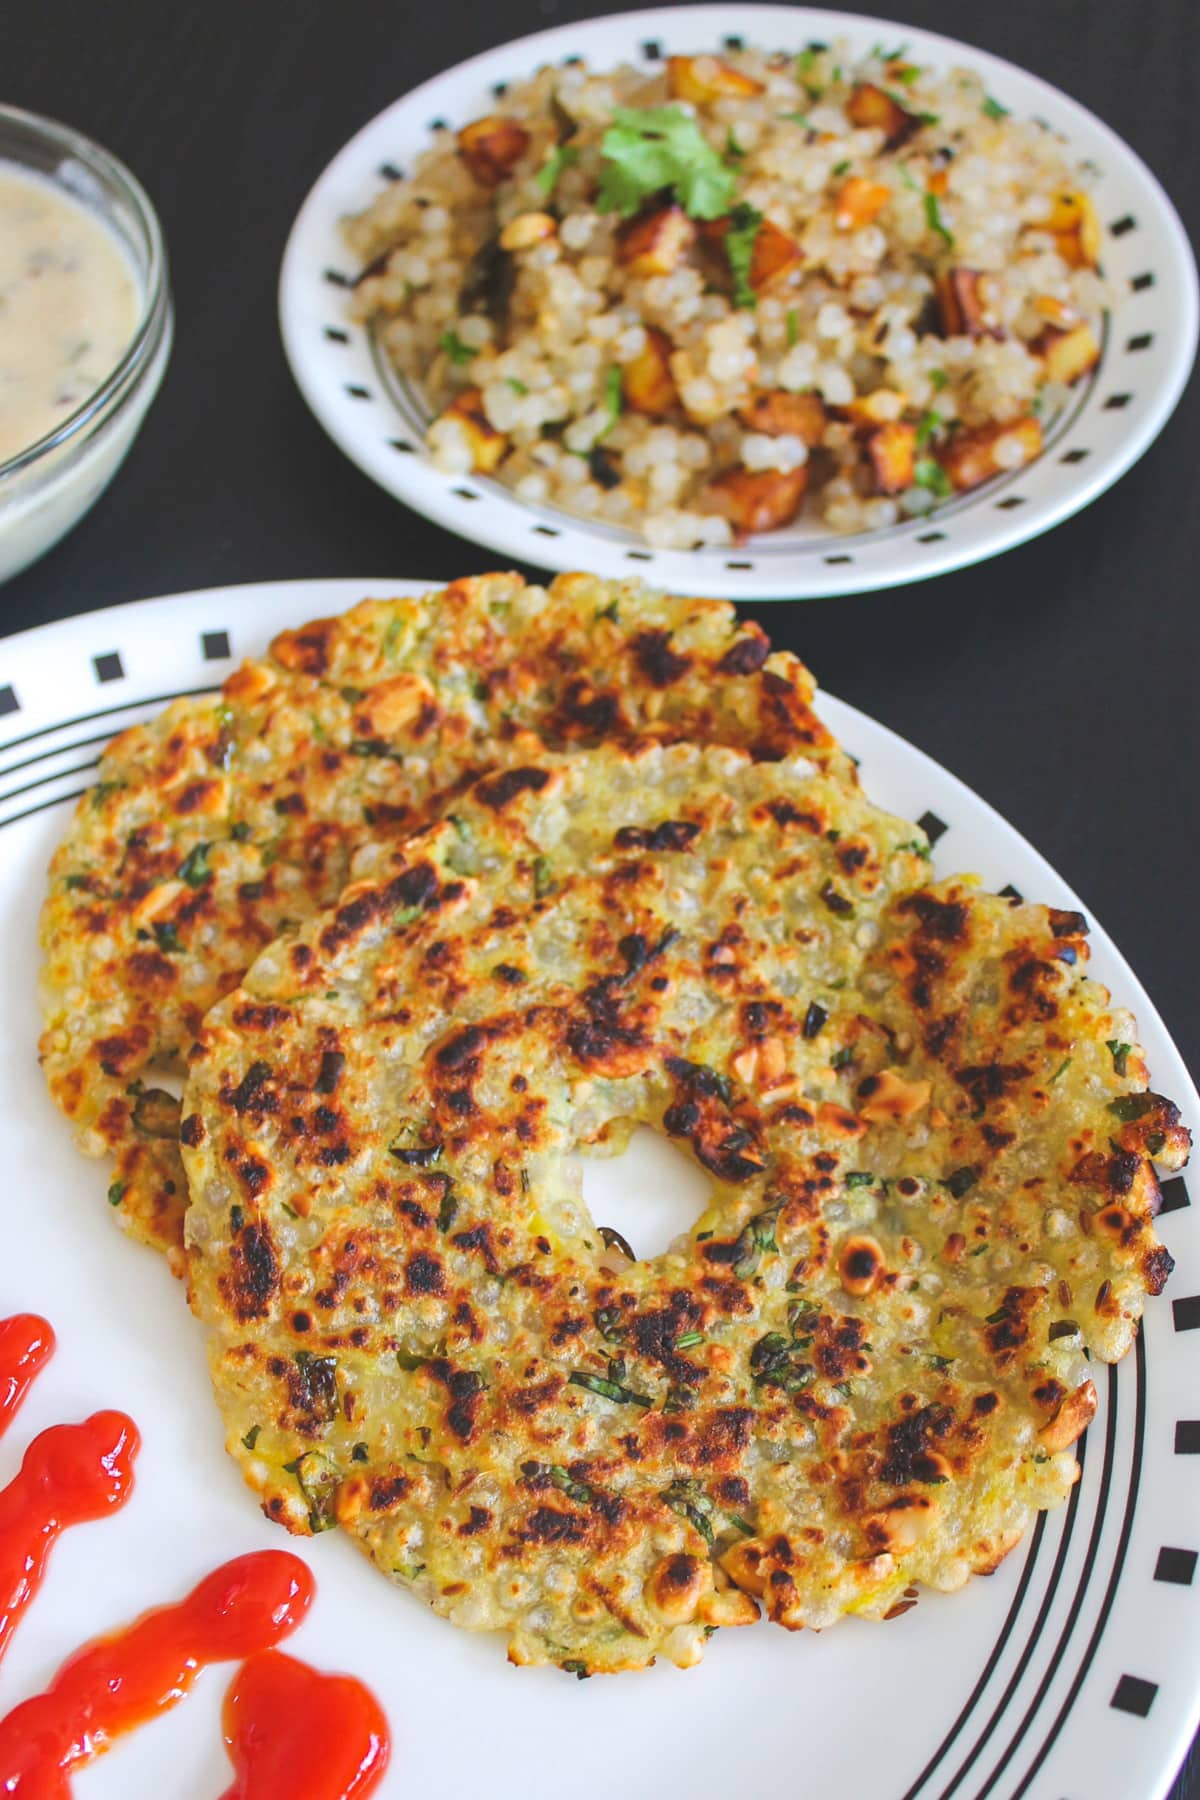 sabudana thalipeeth in a plate with ketchup on side and khichdi served in the back